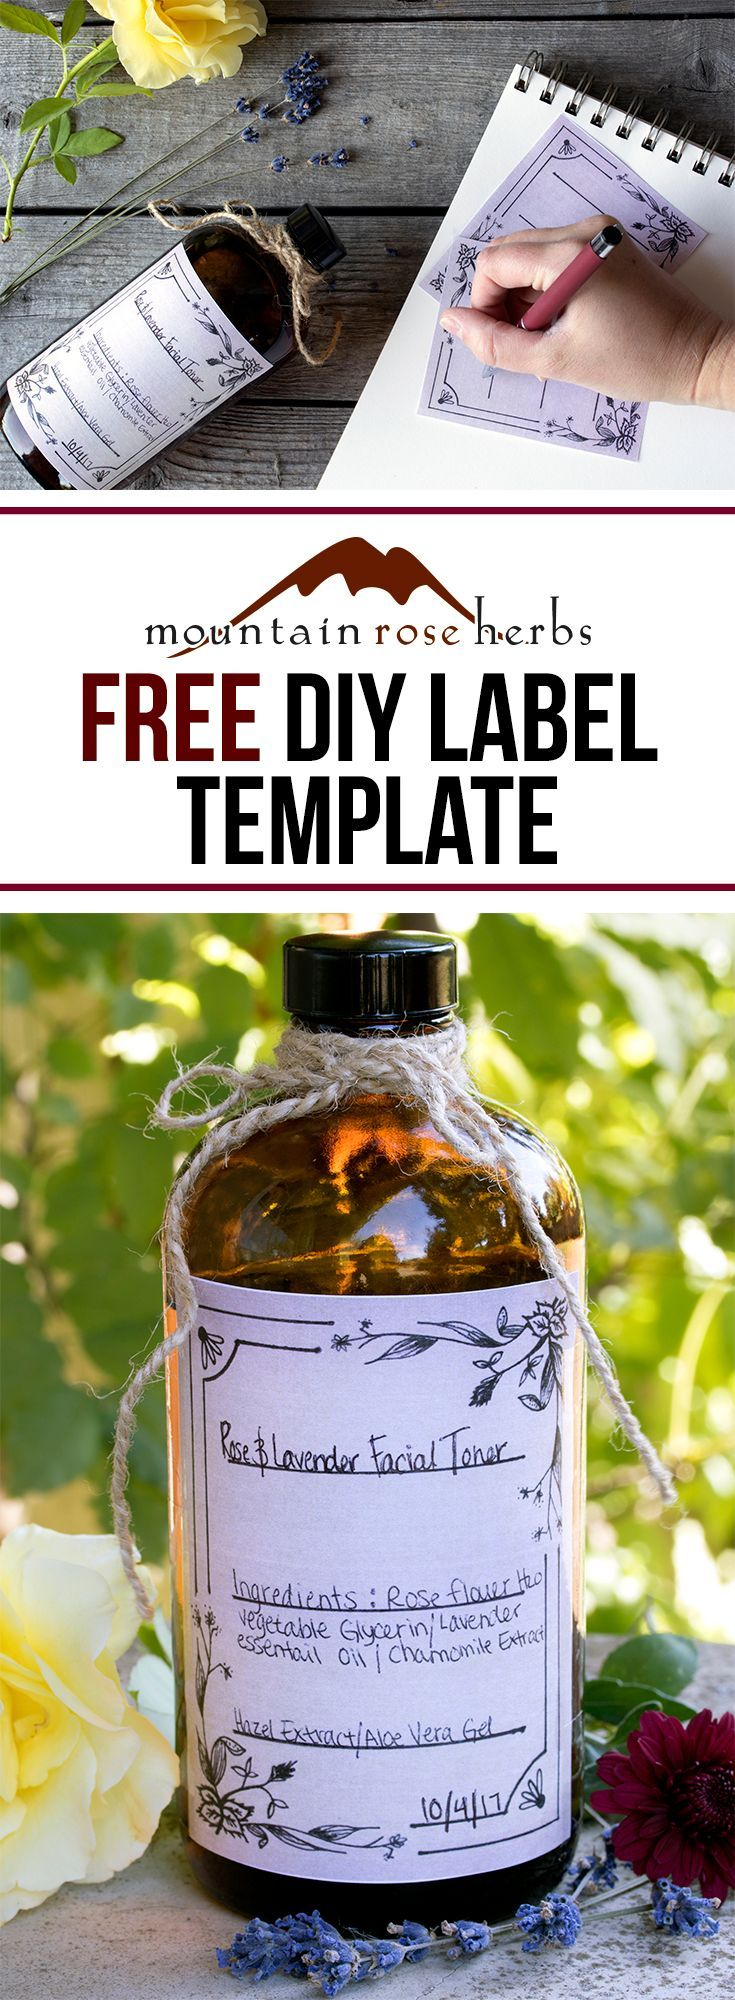 Print your own botanical label template for DIY products.